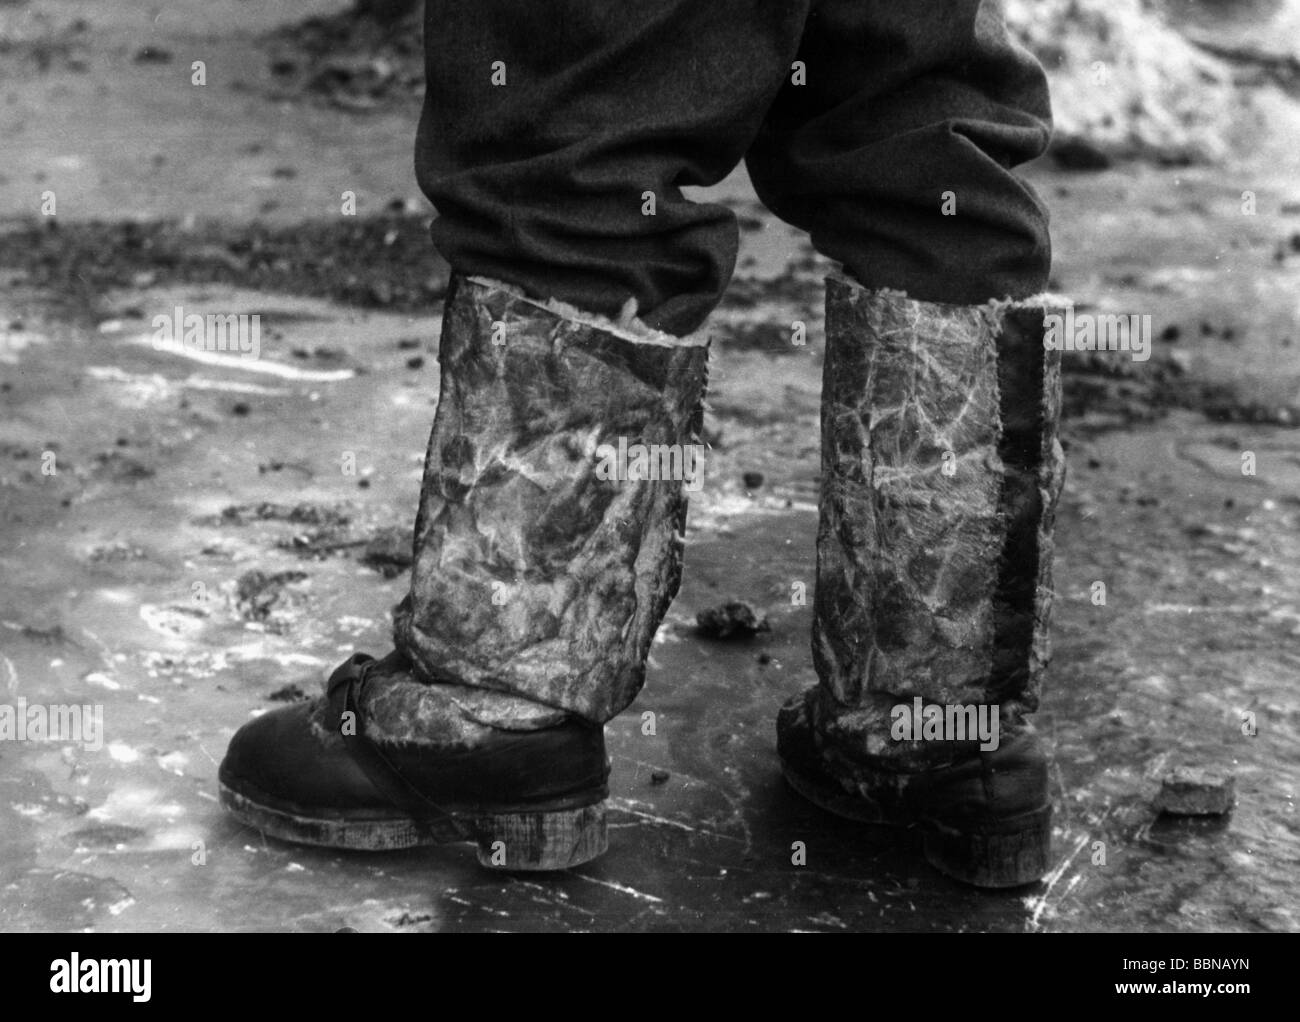 events, Second World War / WWII, German Wehrmacht, self-made winter boots, made of lambskin, wood and leather, against - Stock Image